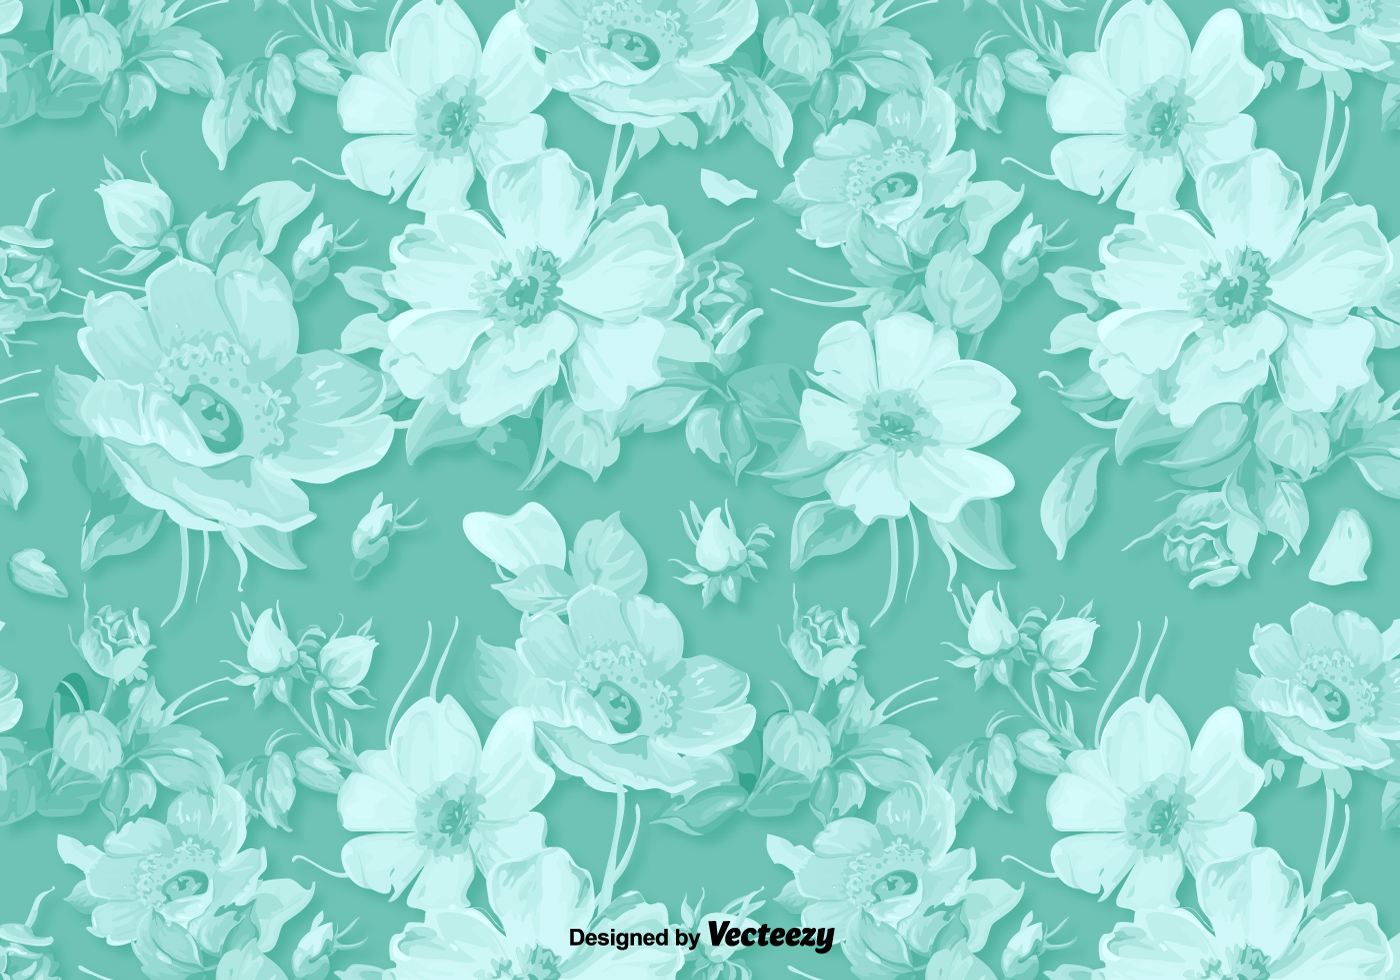 Classic vector floral background download free vector art stock graphics images - Floral background ...